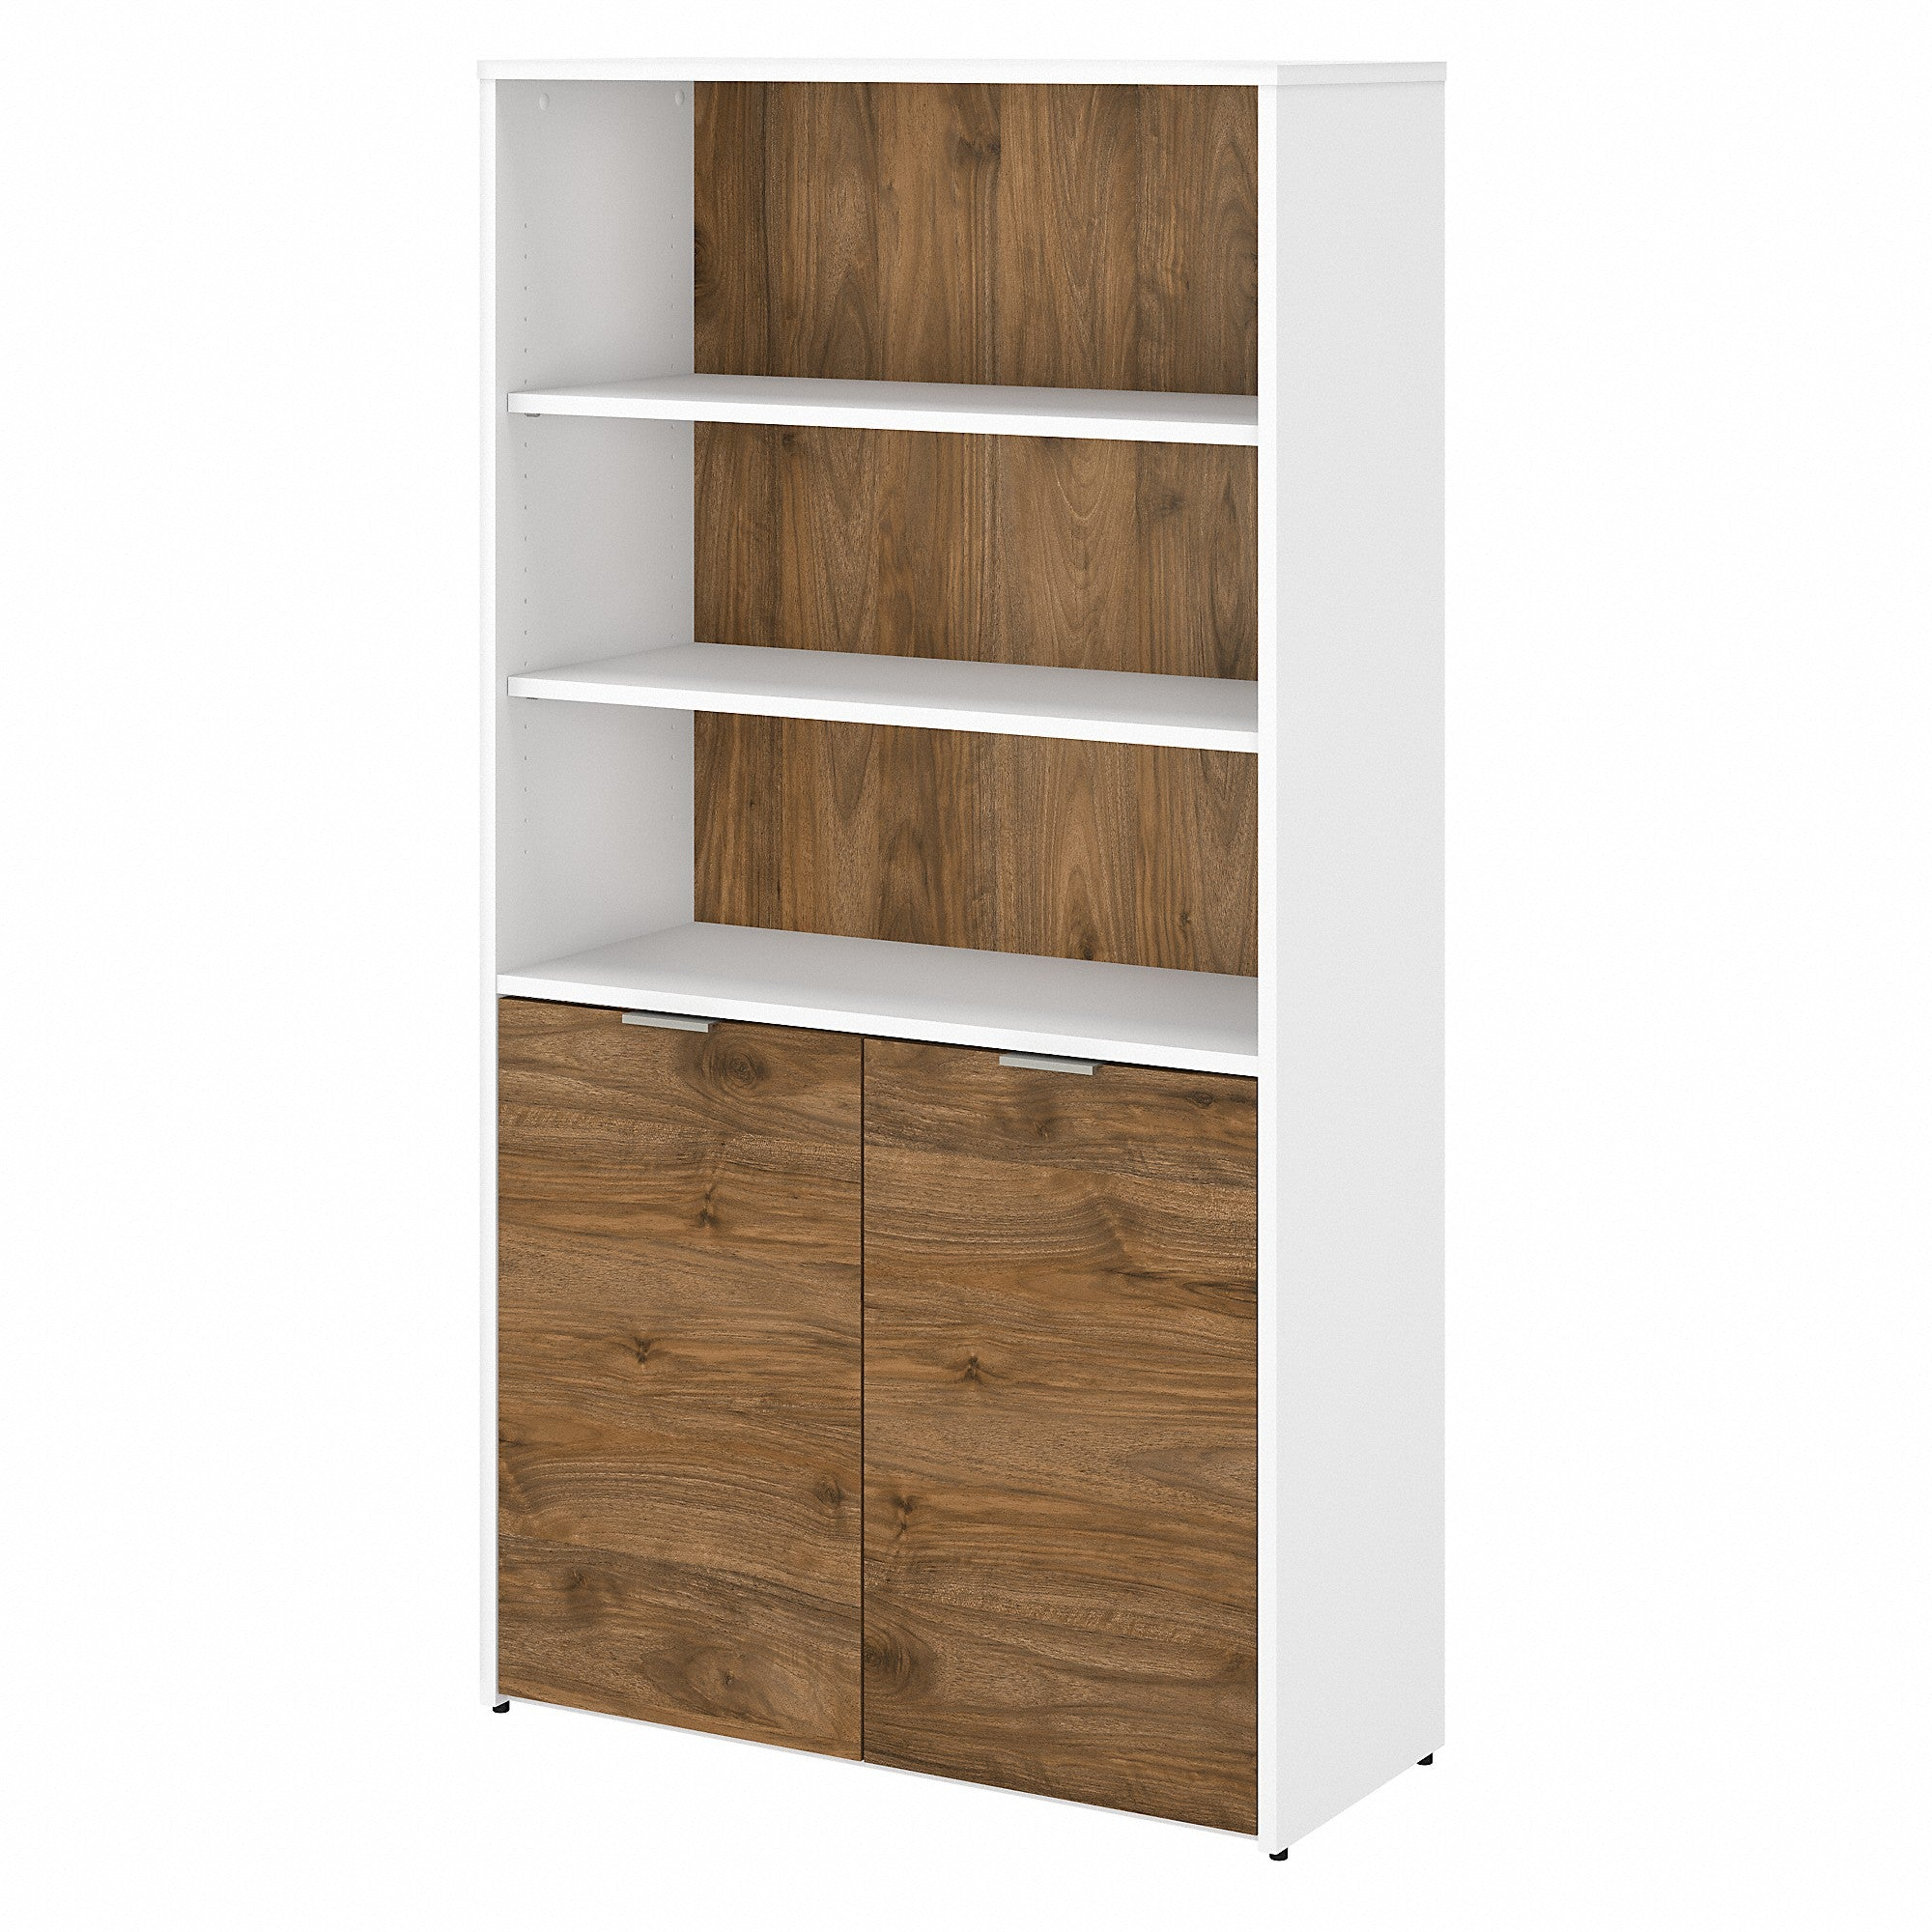 Jamestown 5 Shelf Bookcase with Doors -Fresh Walnut/White